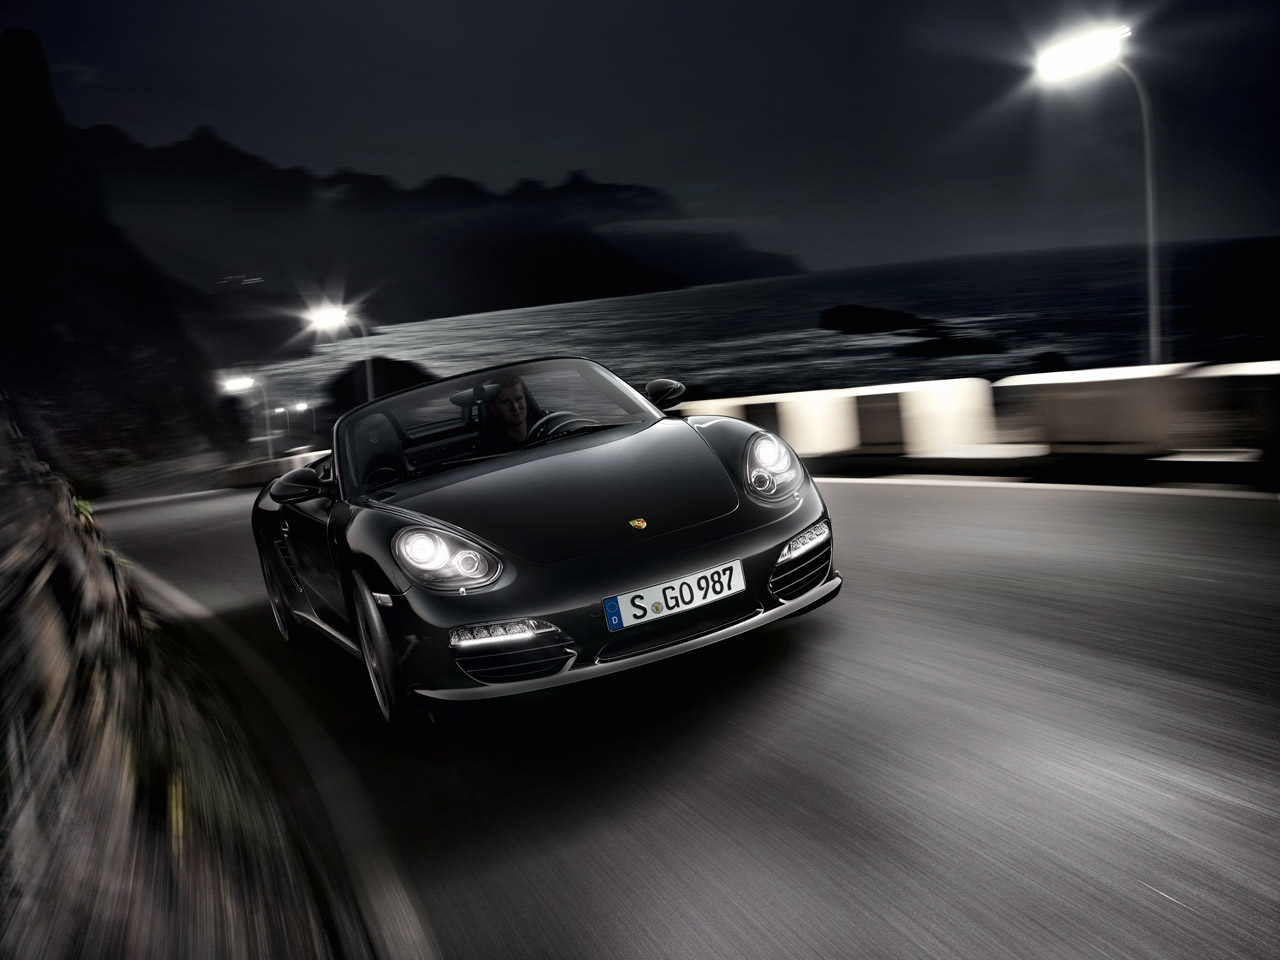 2012 PORSCHE BOXSTER S BLACK EDITION WALLPAPER